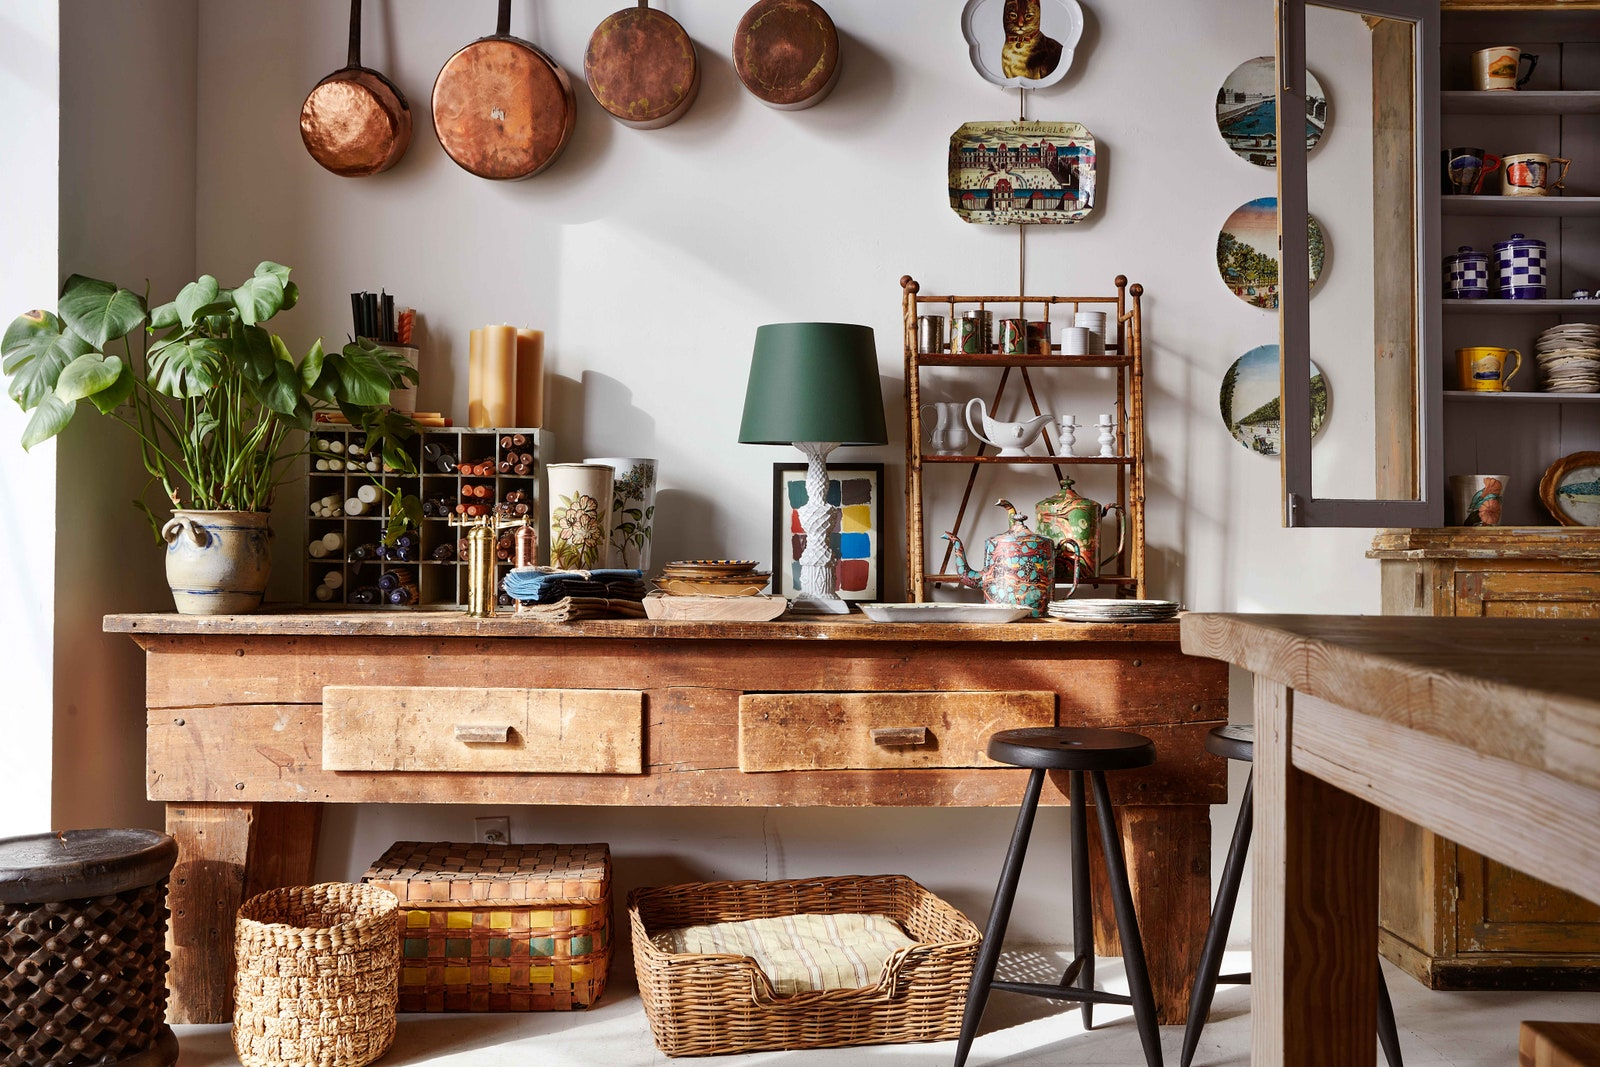 40 of the Best Home Decor Stores in America